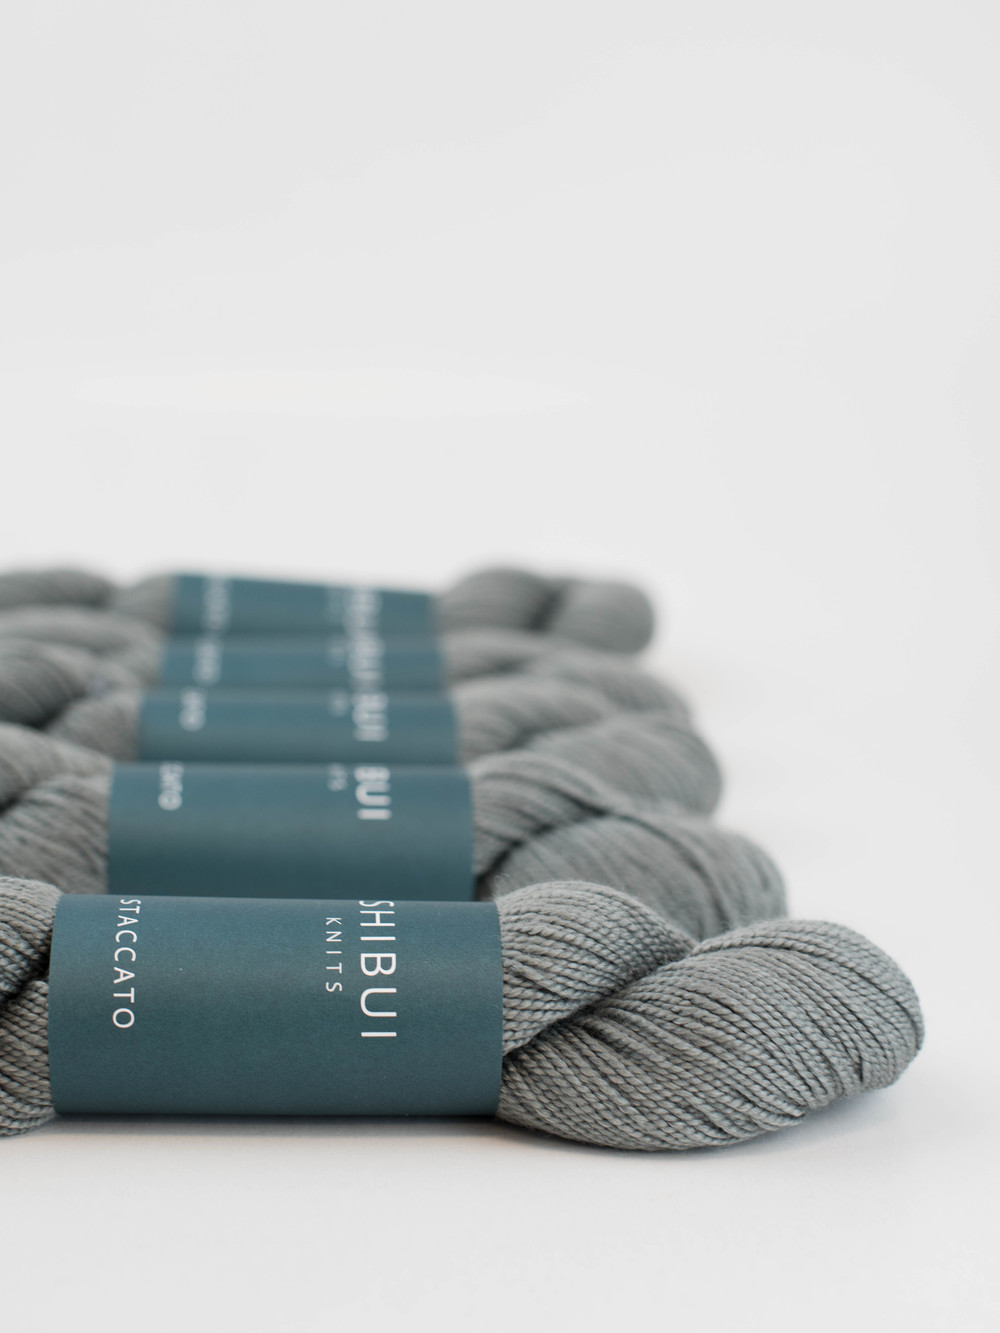 Shibui-Knits-Promotional-Collateral-2228.jpg